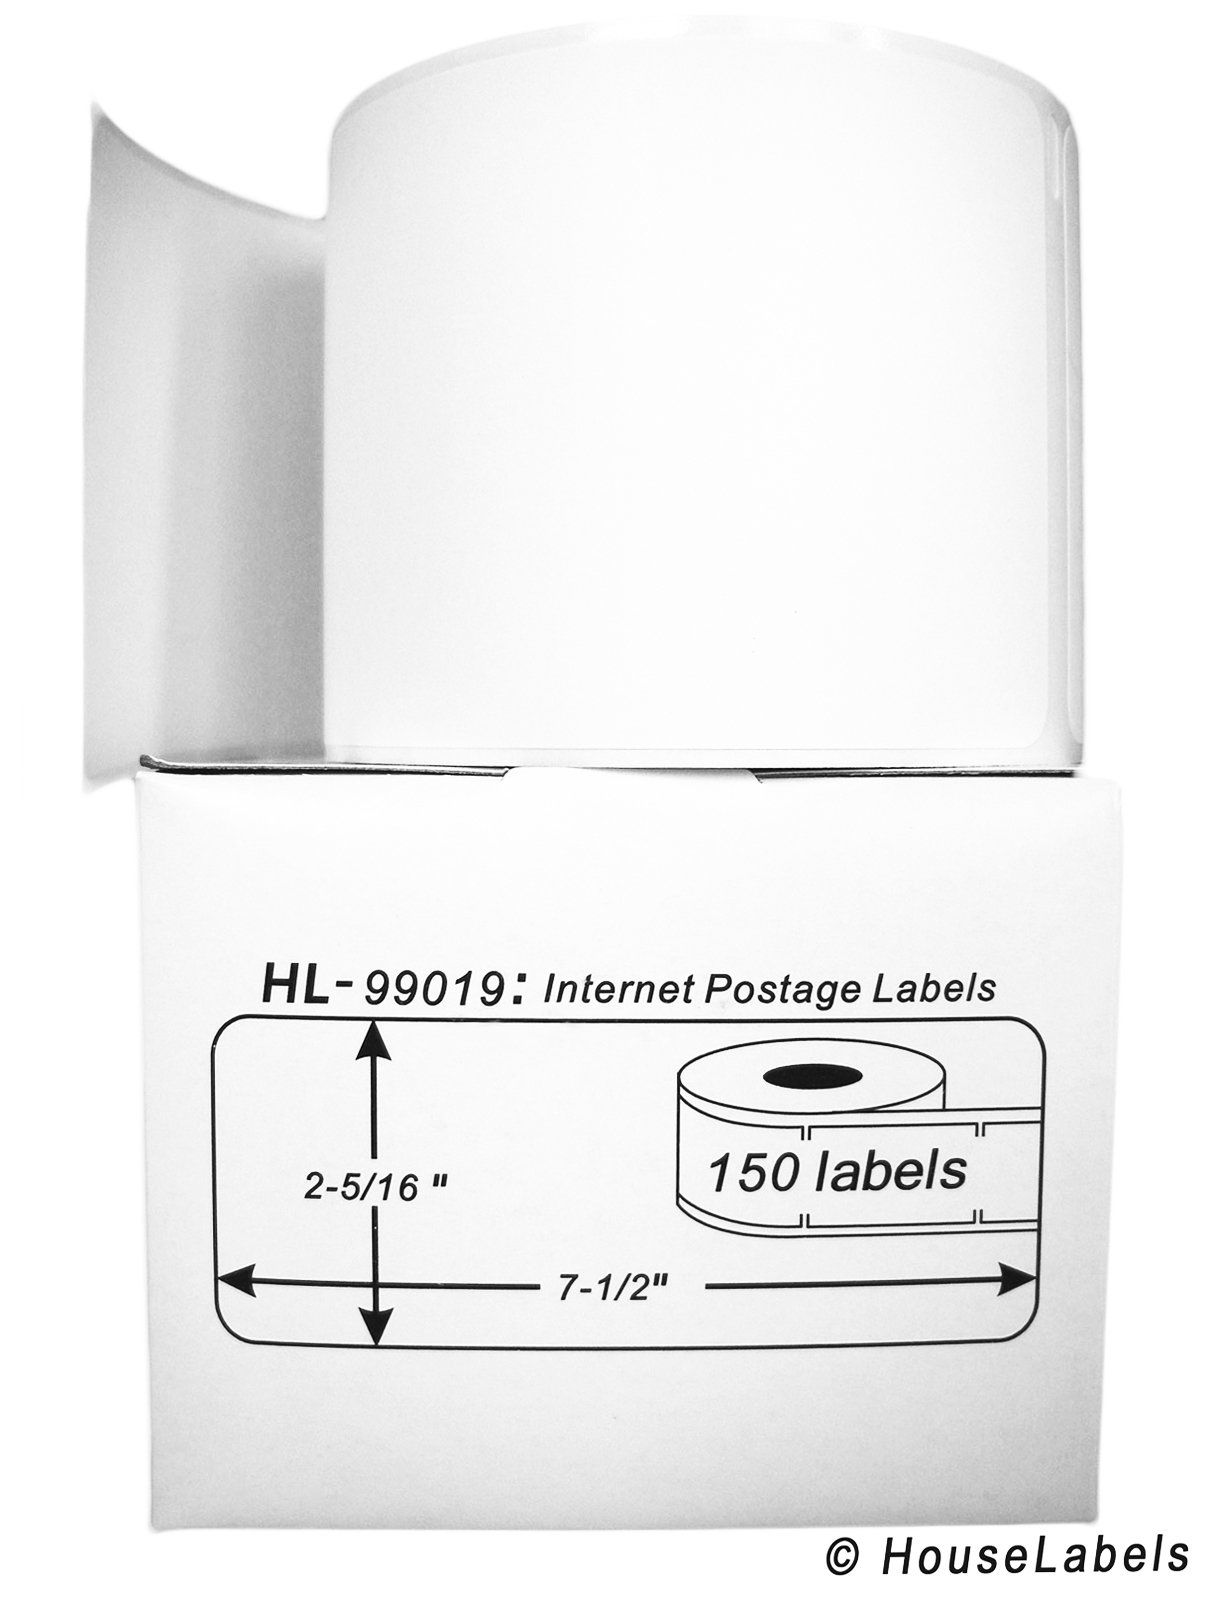 6 Rolls; 150 Labels per Roll of HouseLabels DYMO-Compatible 99019 1-Part Internet Postage Labels (2-5/16'' x 7-1/2'') -- BPA Free!